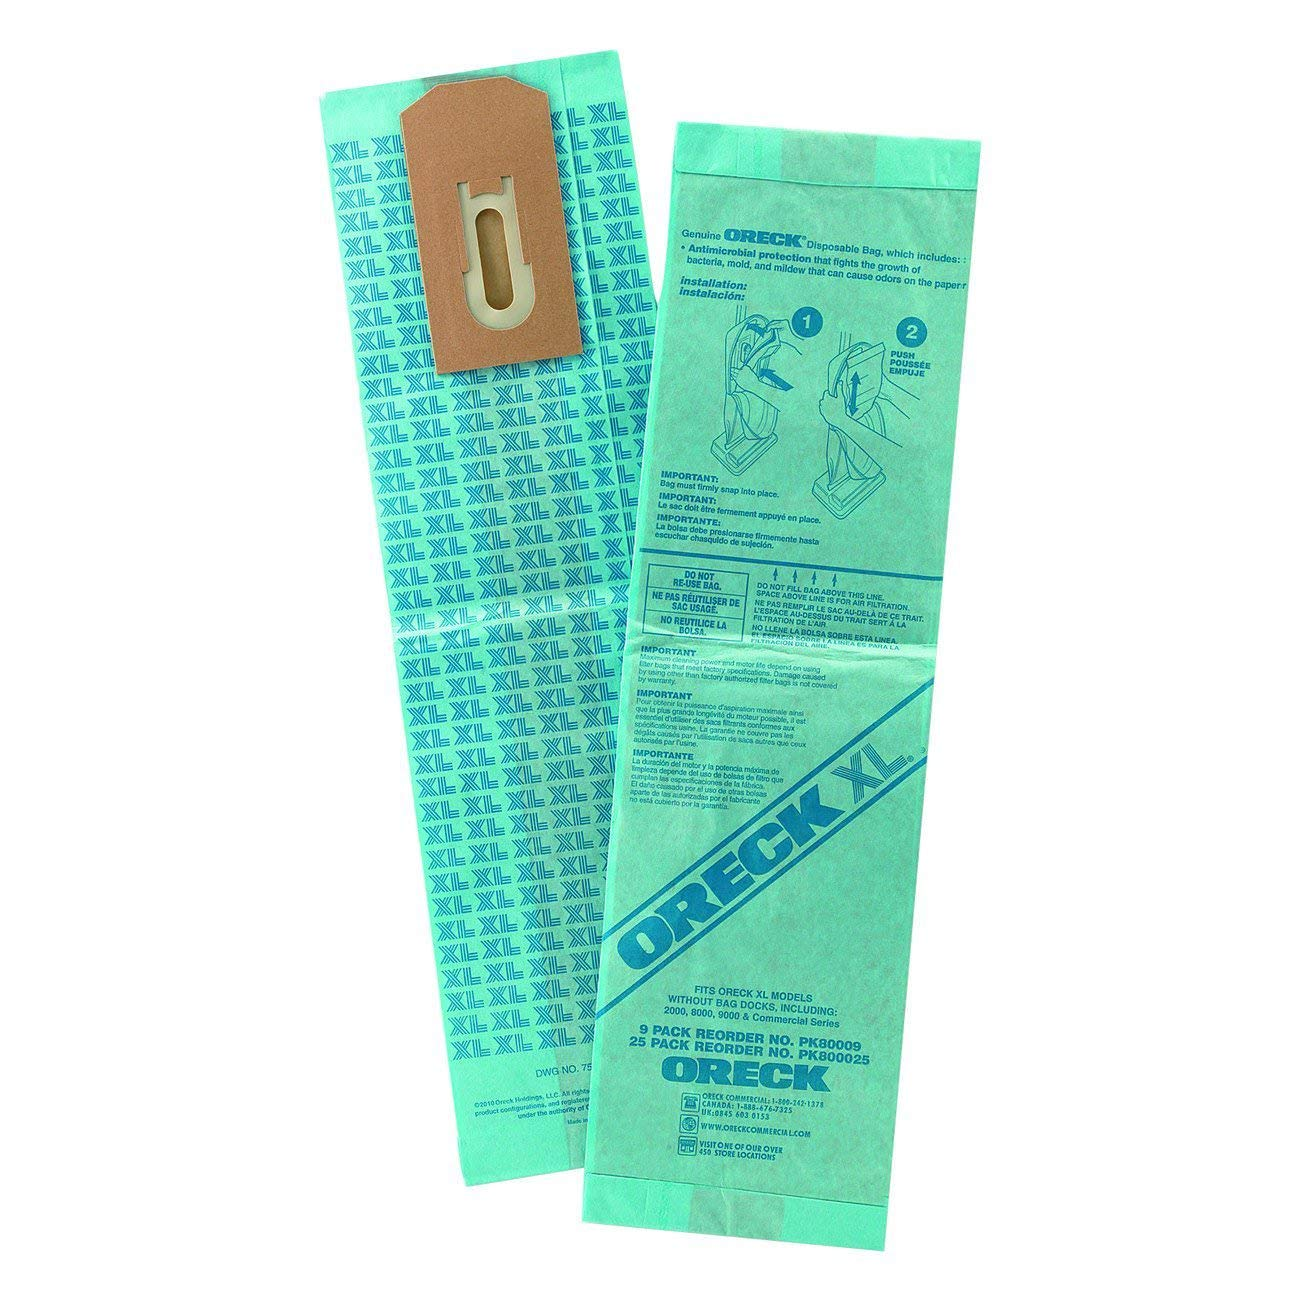 Oreck Commercial PK800025 Upright Vacuum Disposable Bag, For Upright Vacuum, Pack of 25 by Oreck